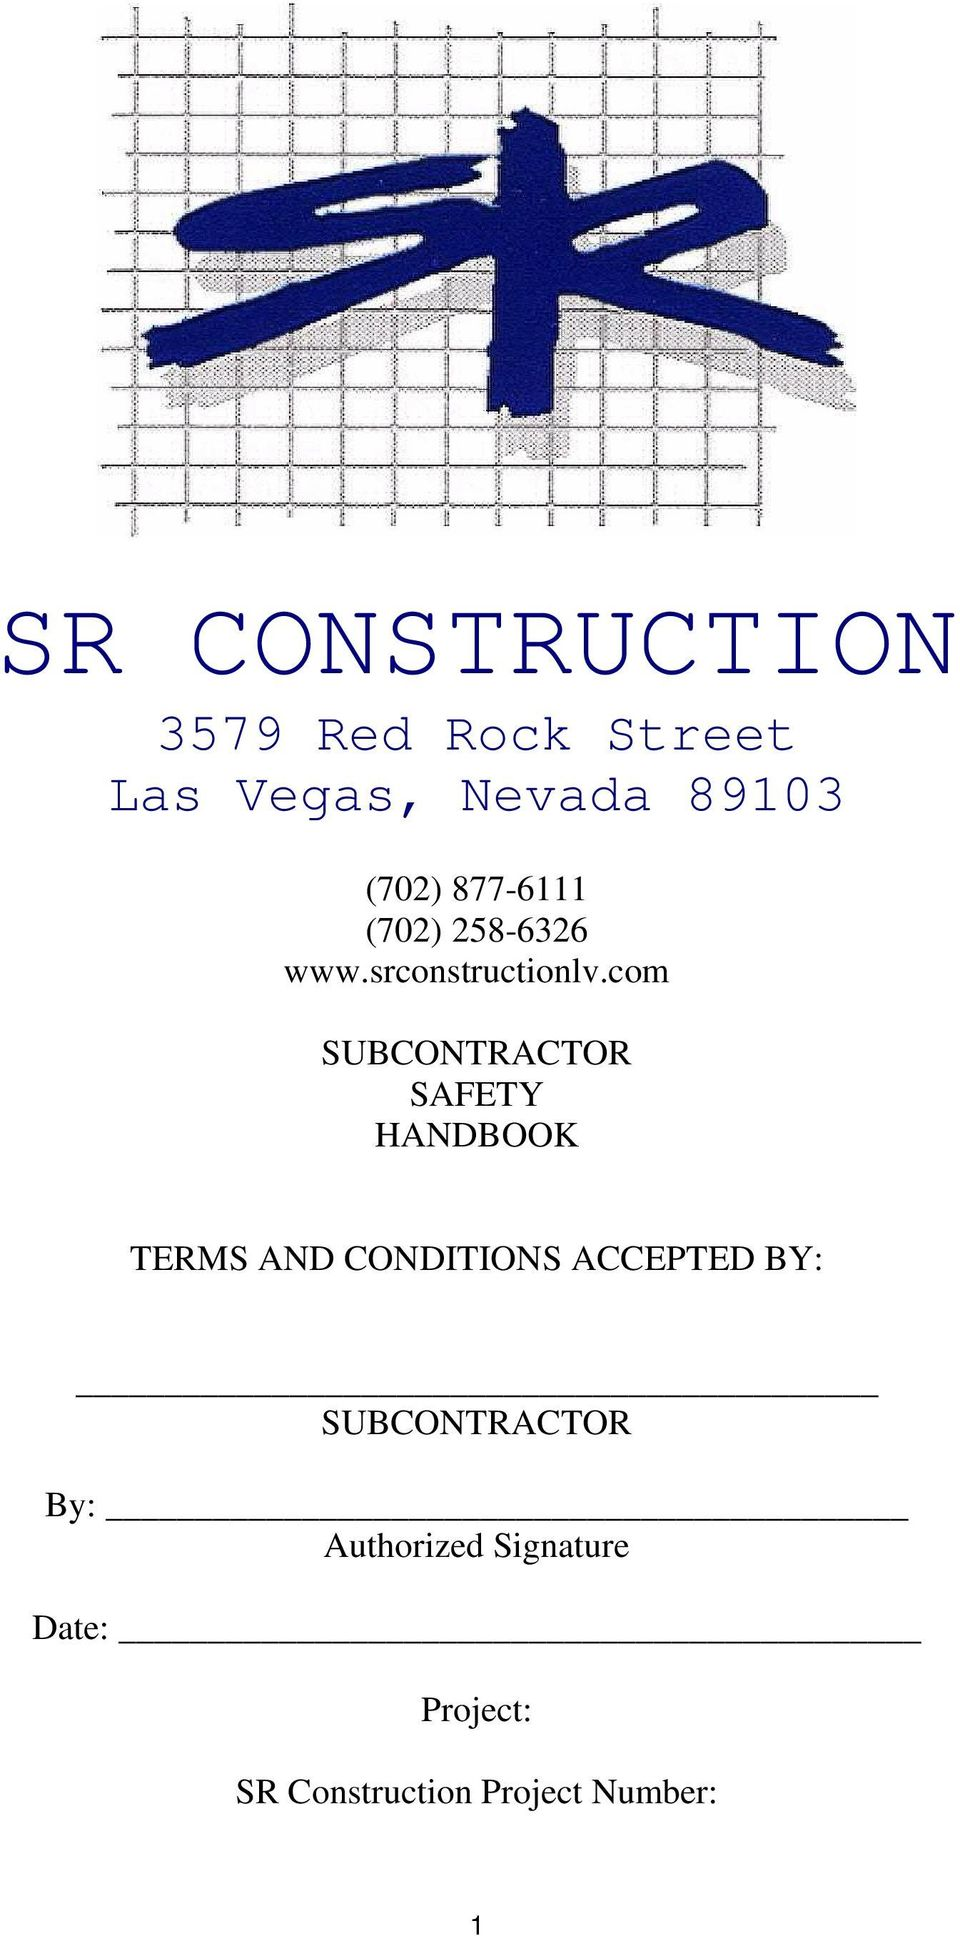 com SUBCONTRACTOR SAFETY HANDBOOK TERMS AND CONDITIONS ACCEPTED